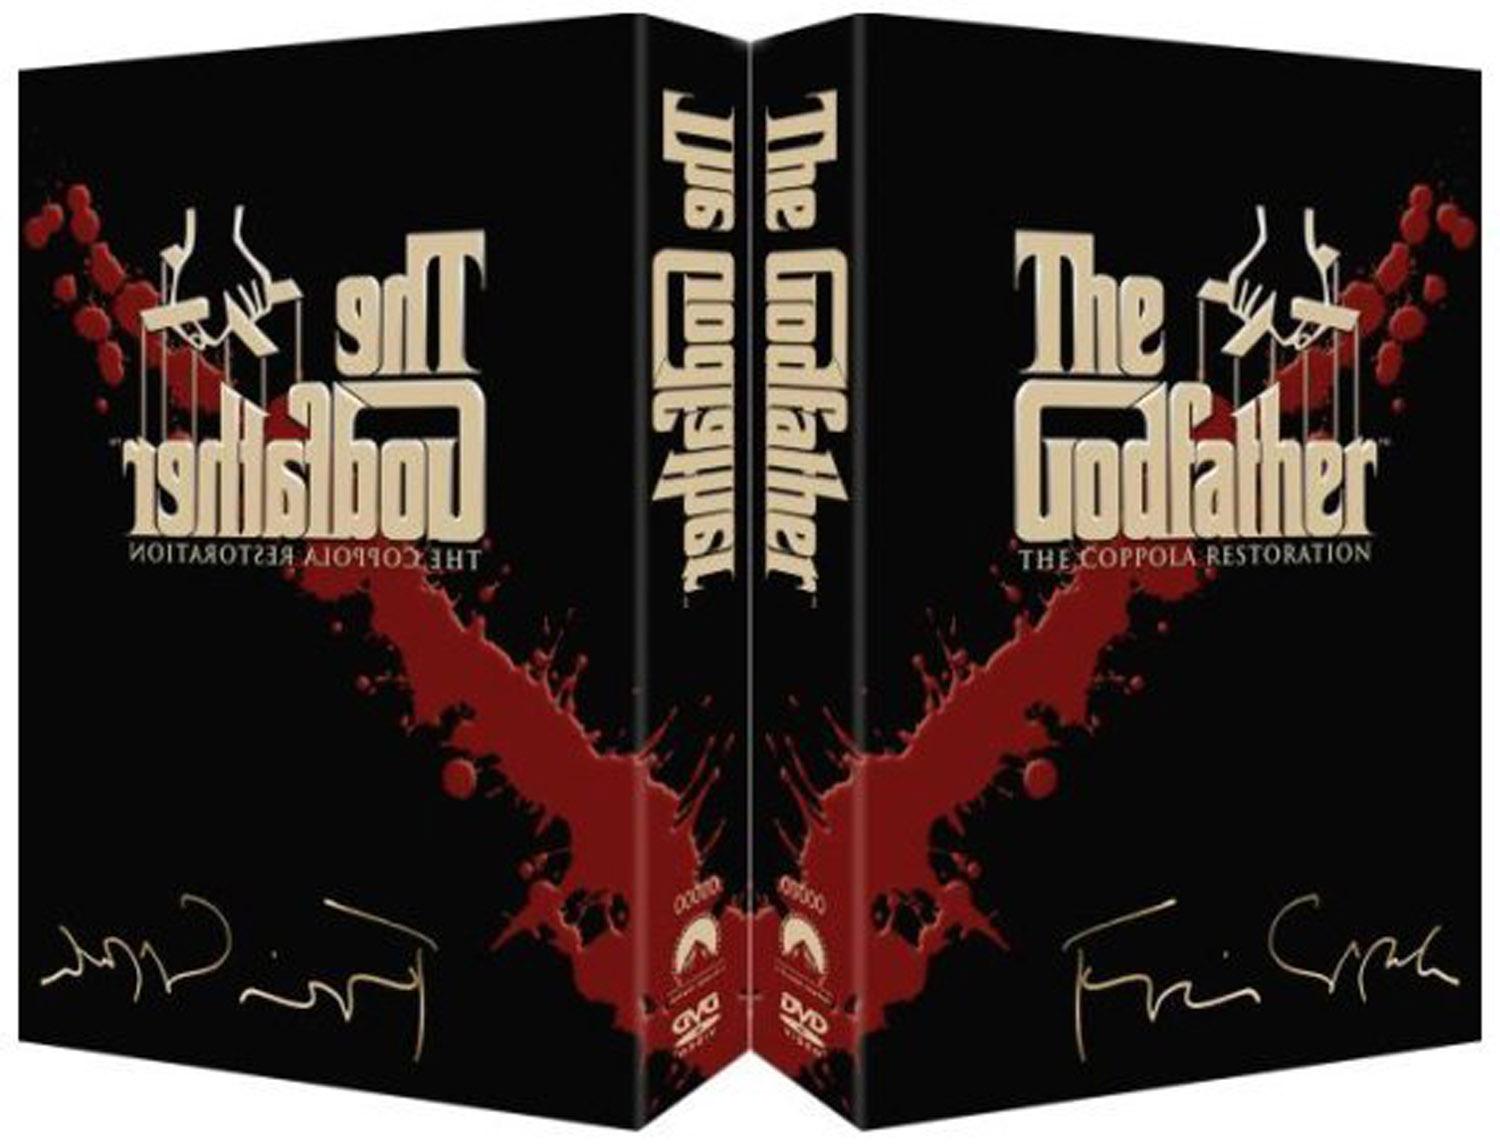 The Godfather1 DVD Case Box